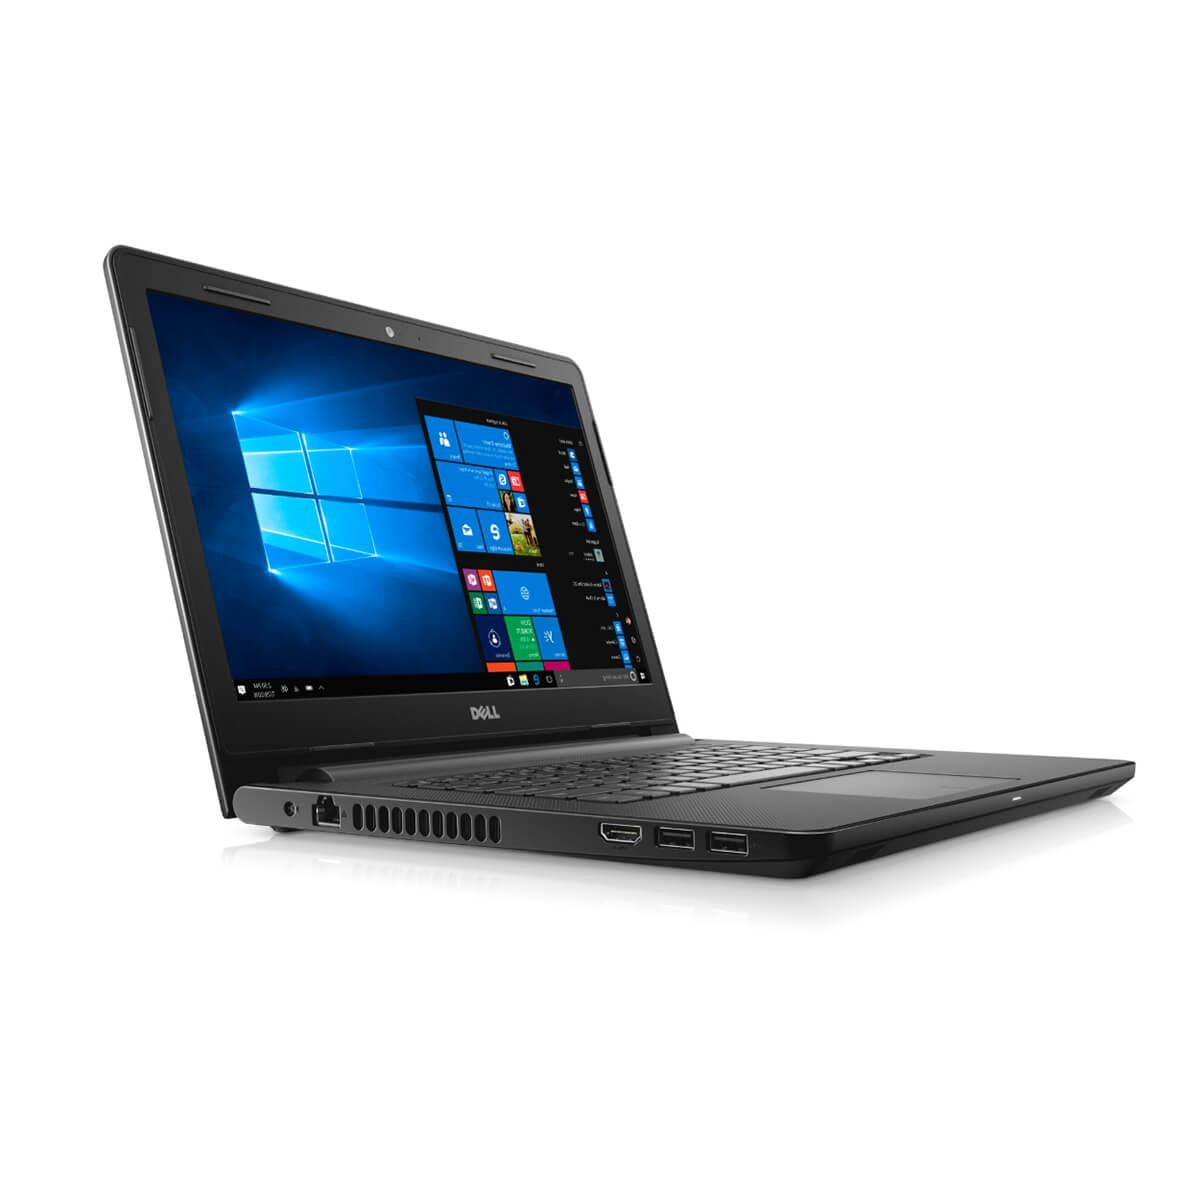 Dell Inspiron 3000 3476-855812G (8th Gen Intel Core i7-8550U,8GB RAM,AMD Radeon R520 2GB GDDR5,1TB HDD)